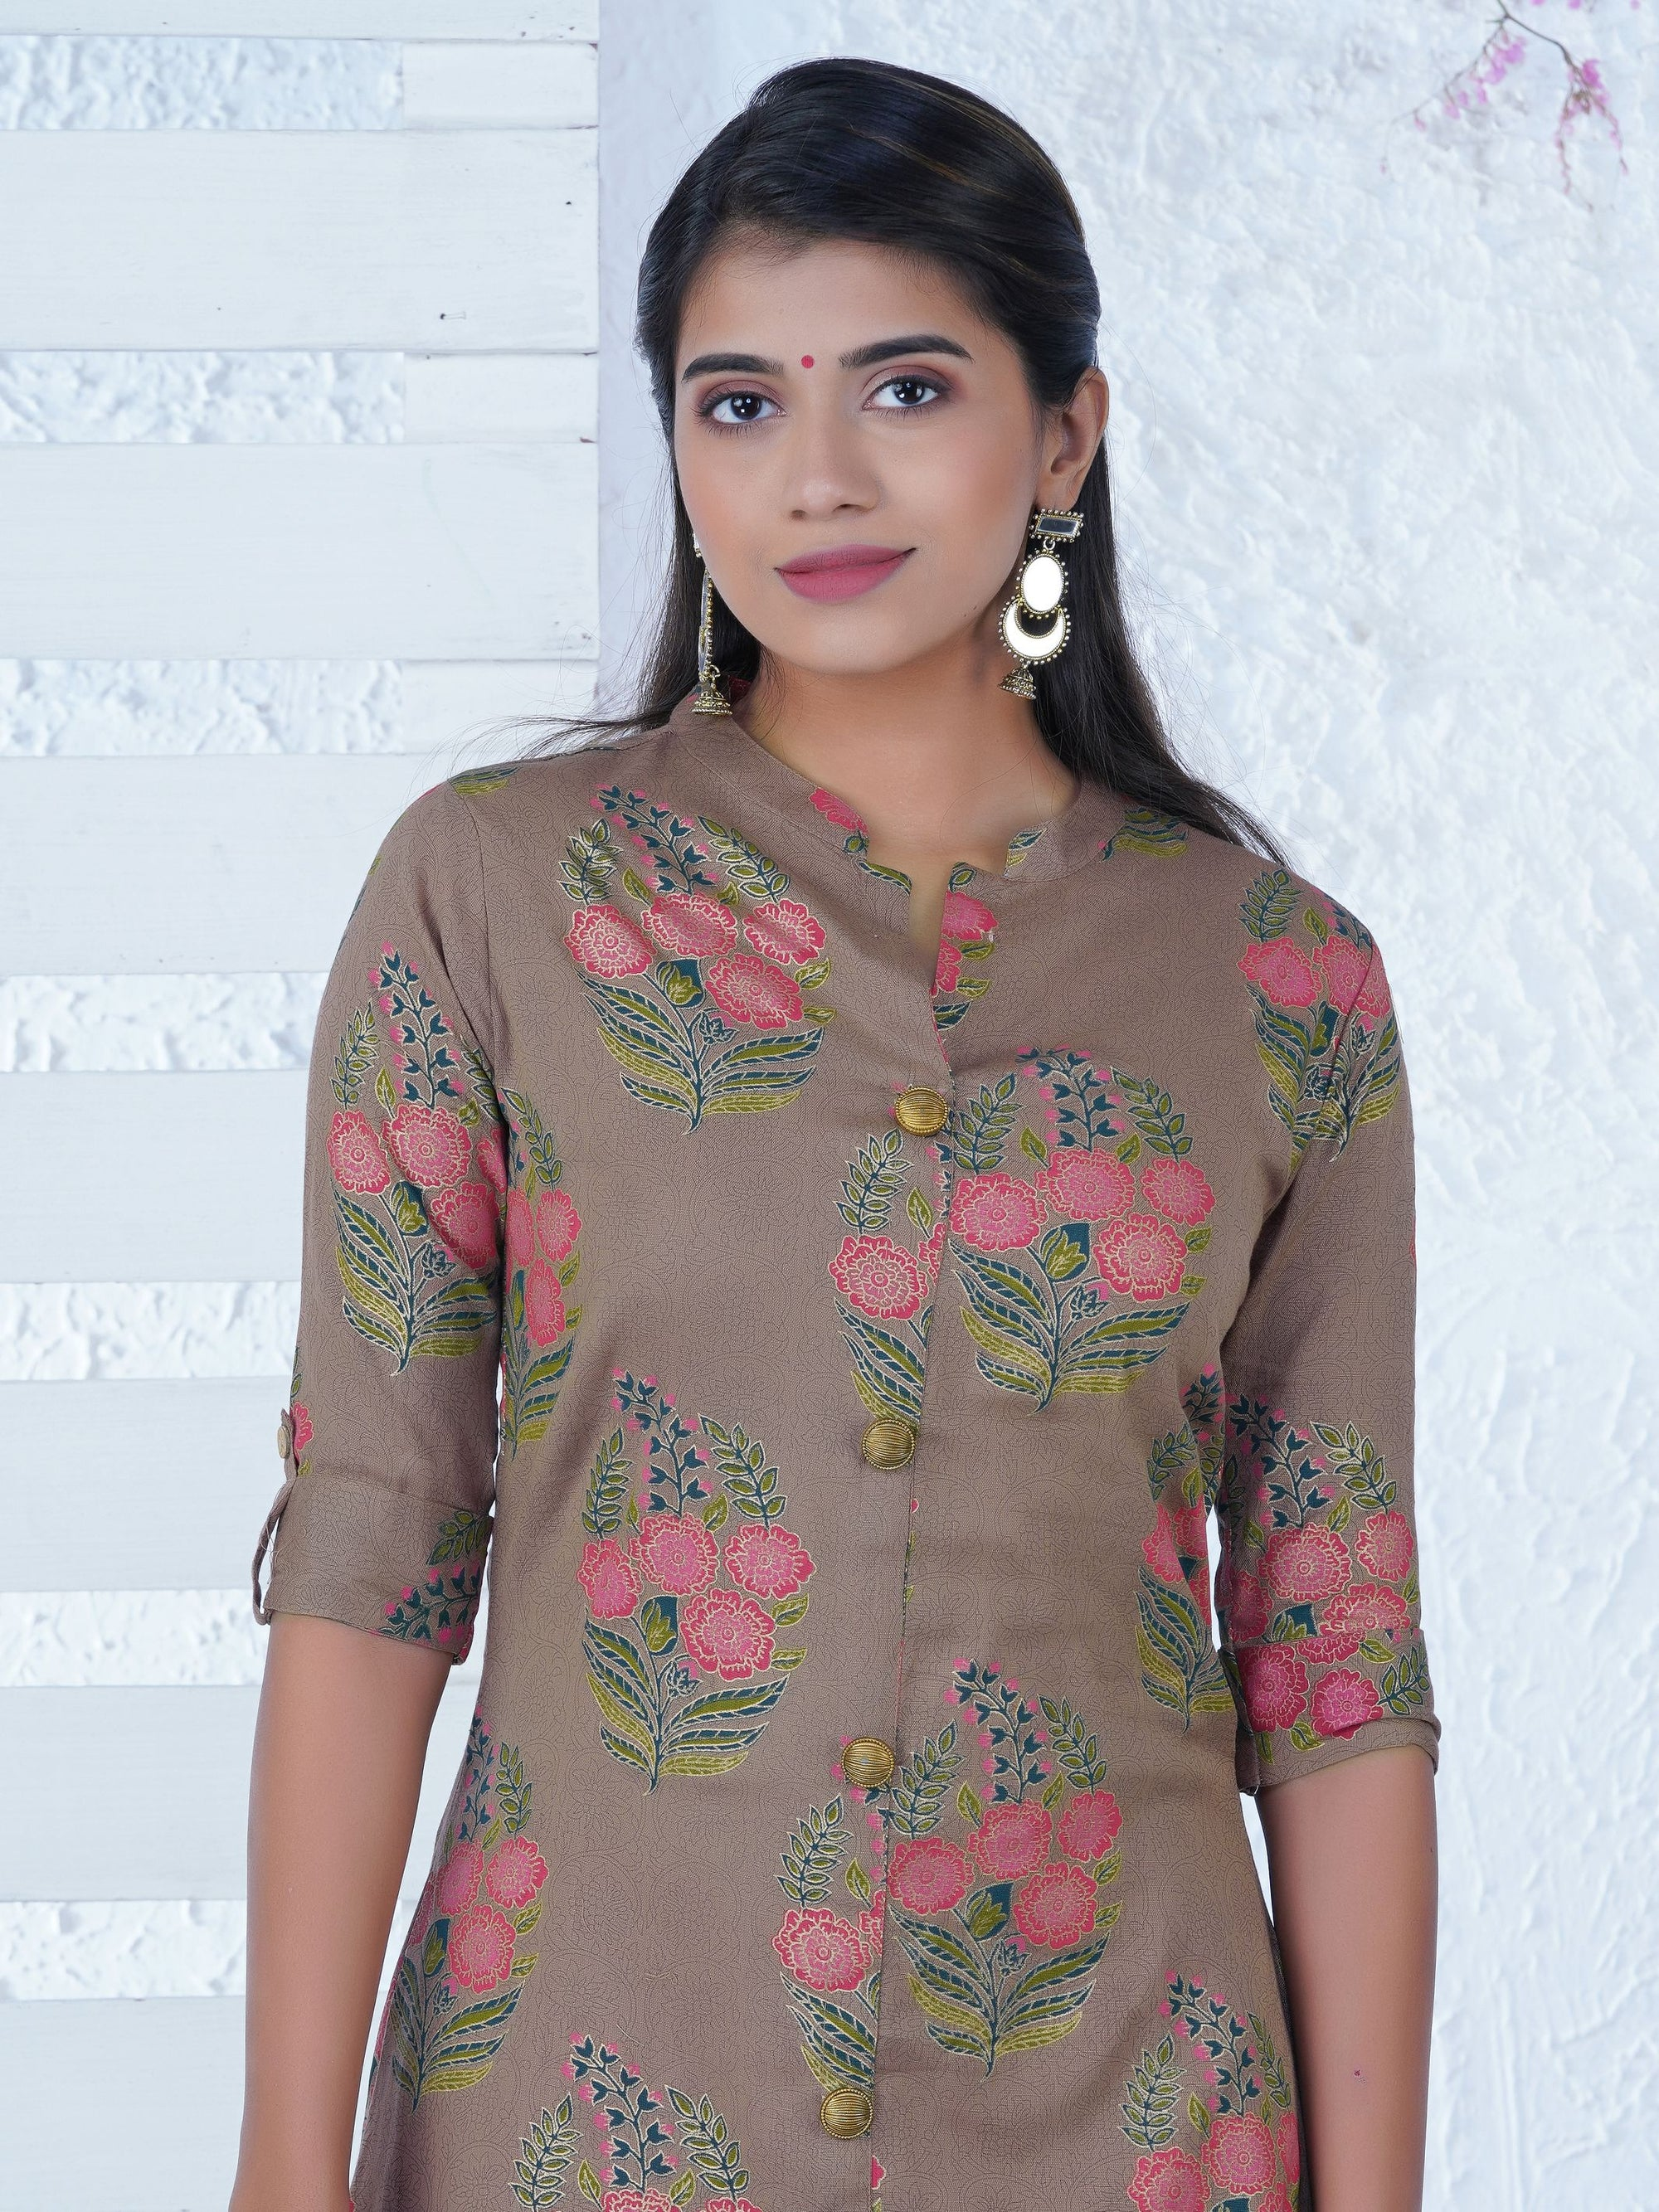 Abstract Ethnic Floral Patterned Kurta with Printed Floral Overlay